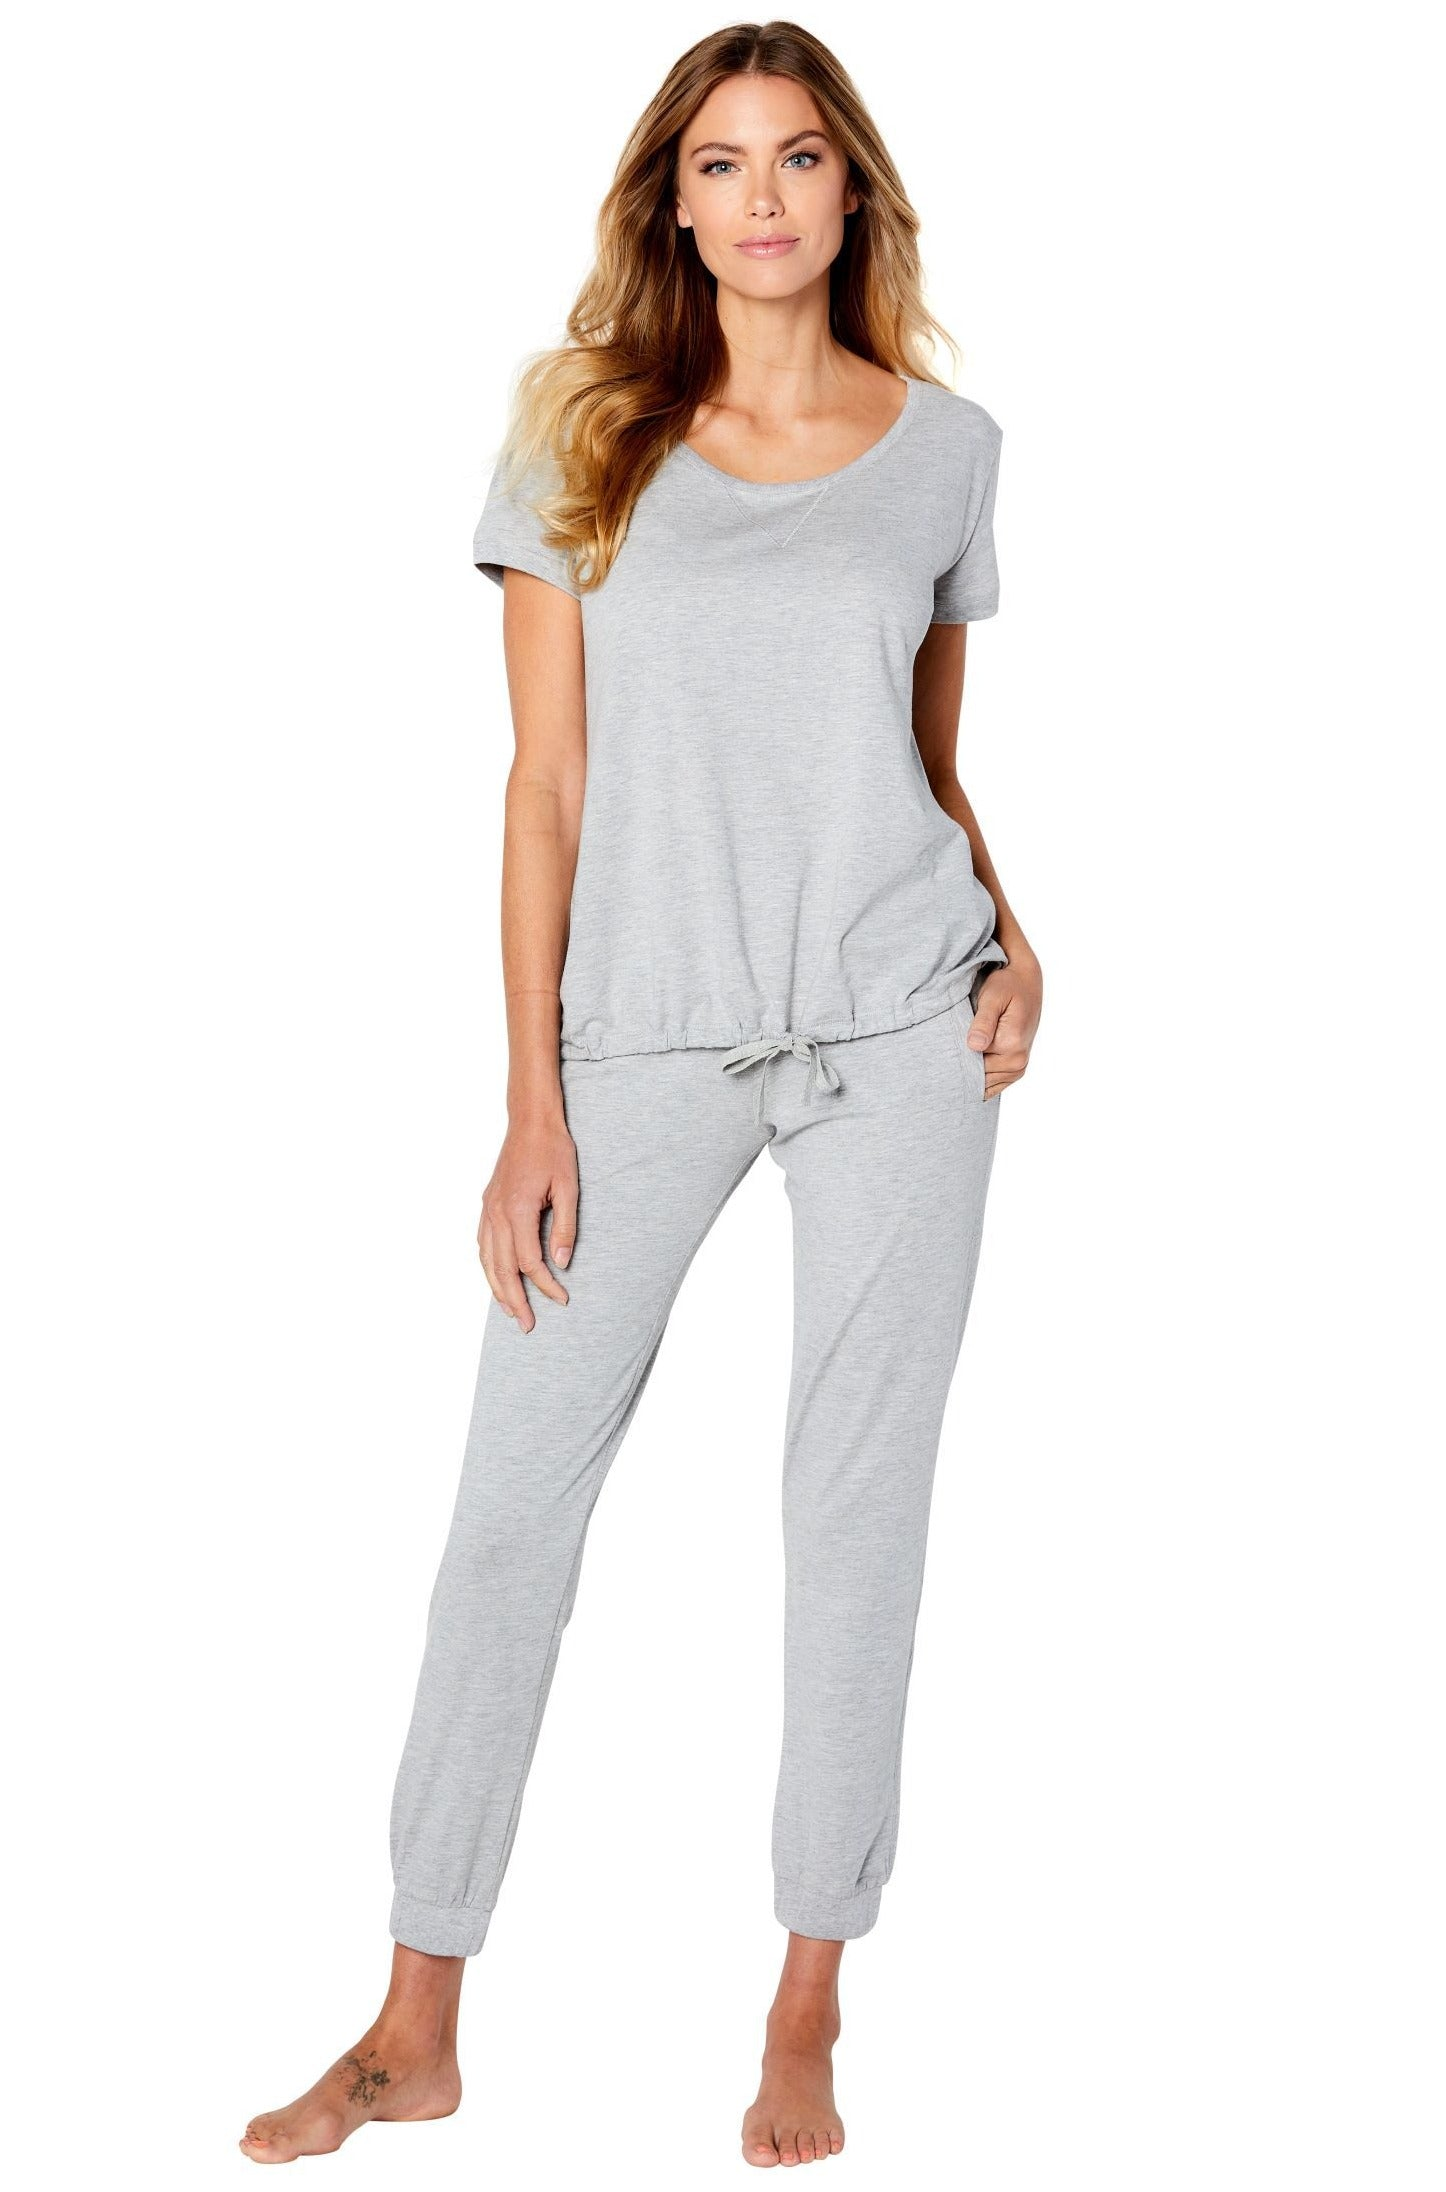 Malibu Relaxed Short Sleeve Top, Jogger Loungewear Set